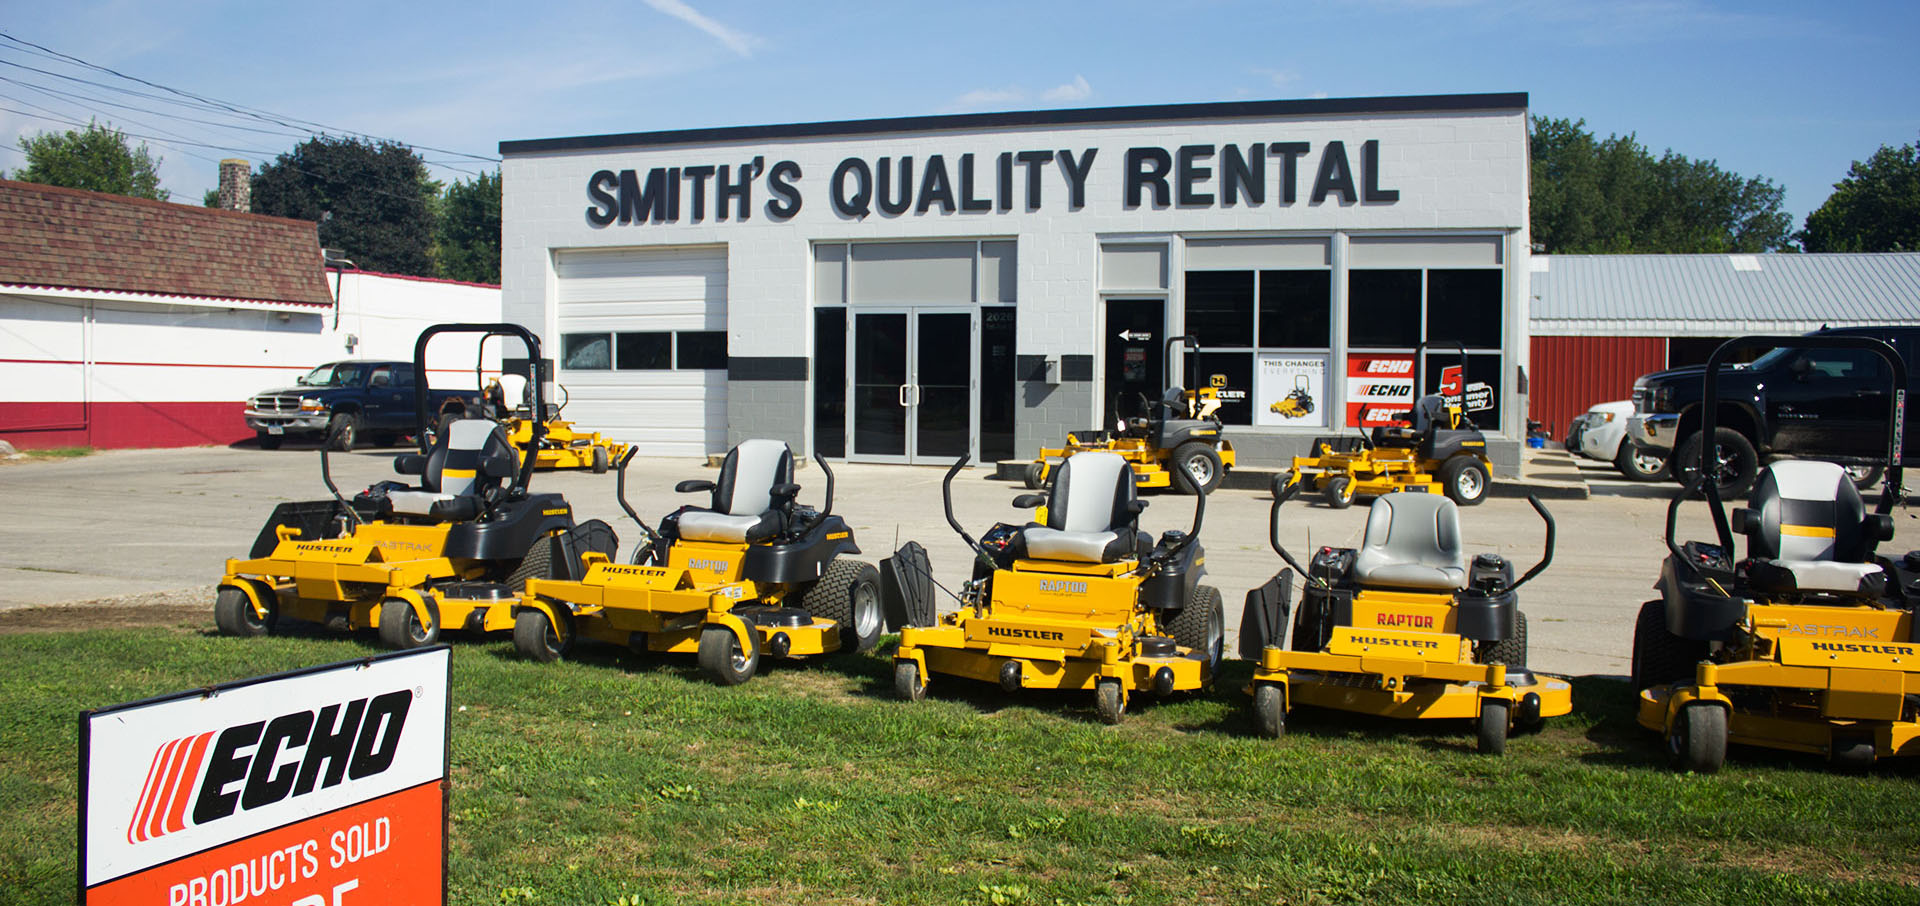 Smith's Quality Rental